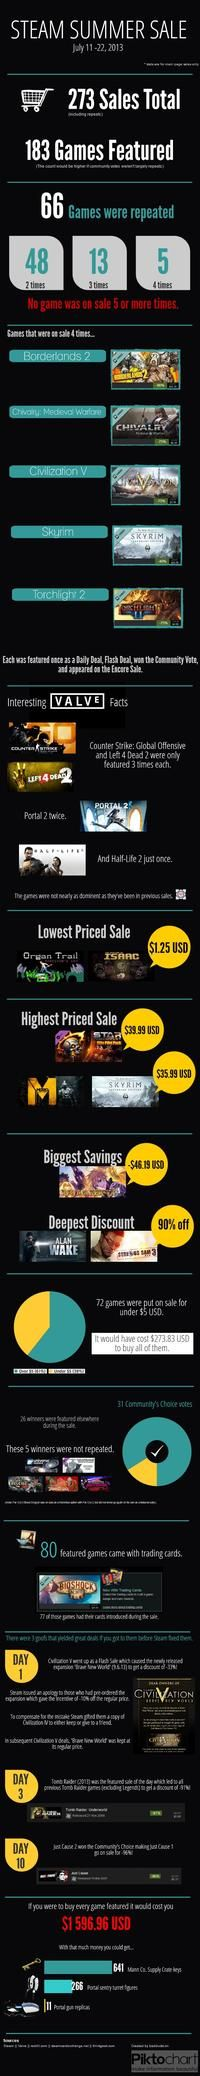 52 best Indie games images on Pinterest Videogames, Indie games - press release template sample